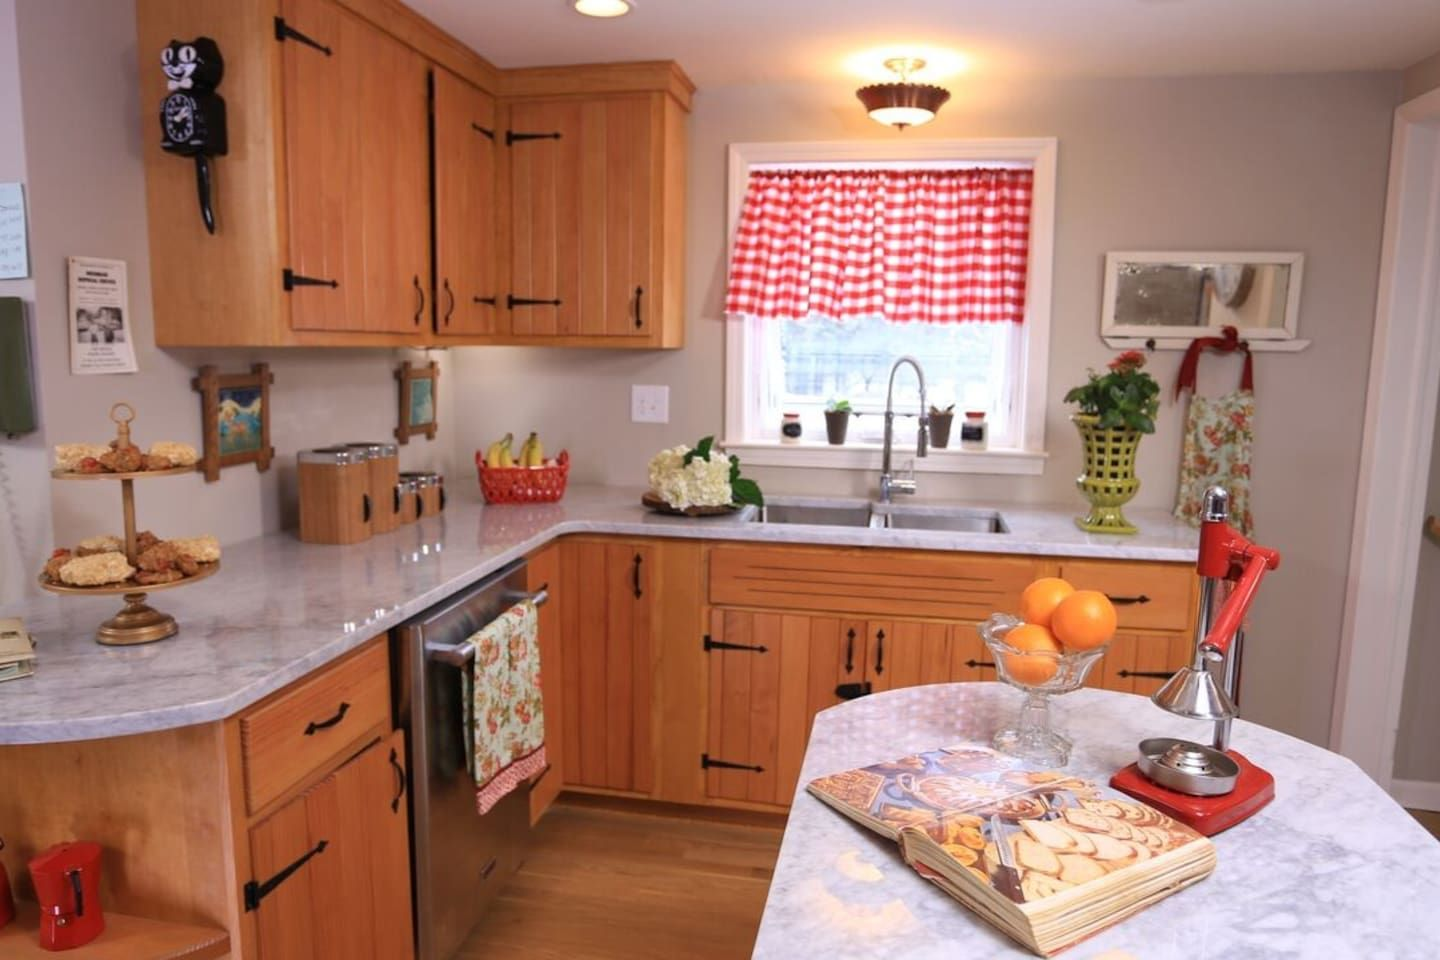 Uncategorized Nicole Curtis Kitchen Design nicole curtis kitchen design tboots us afbeeldingsresultaat voor houses for sale family design